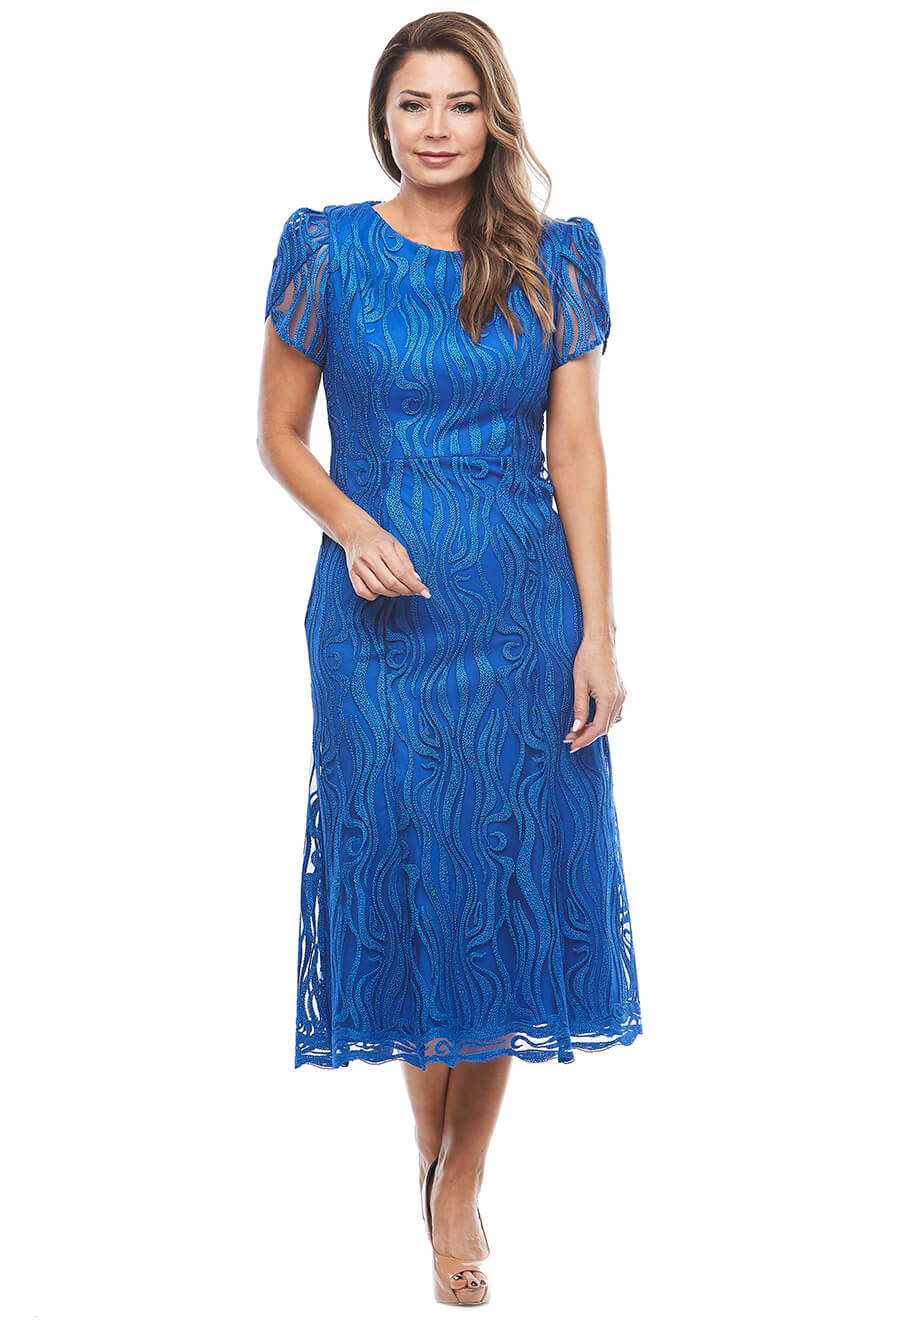 Stunning royal blue lace dress